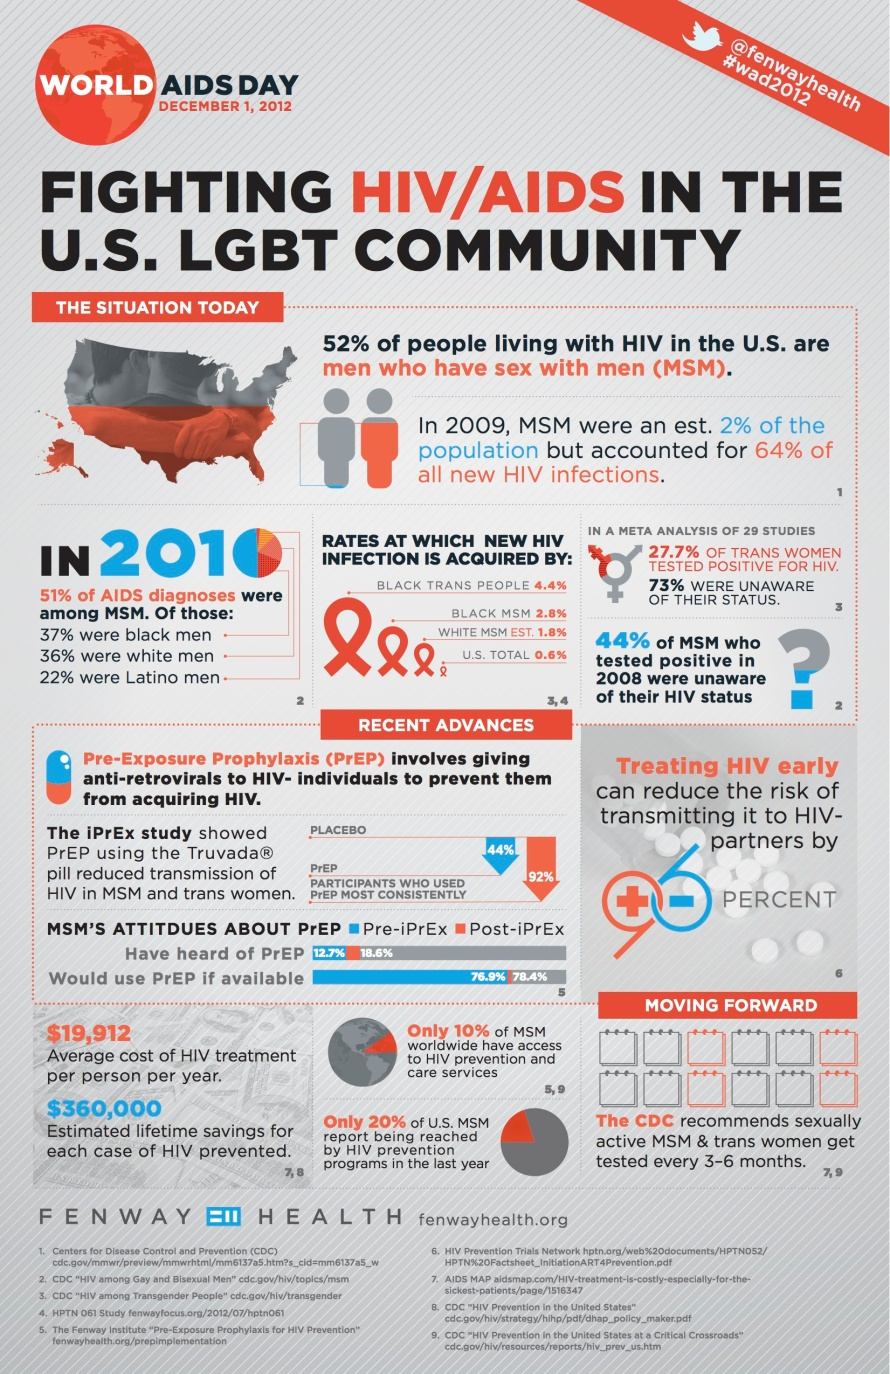 114774077-world-aids-day-infographic-fighting-hiv-aids-in-the-lgbt-community